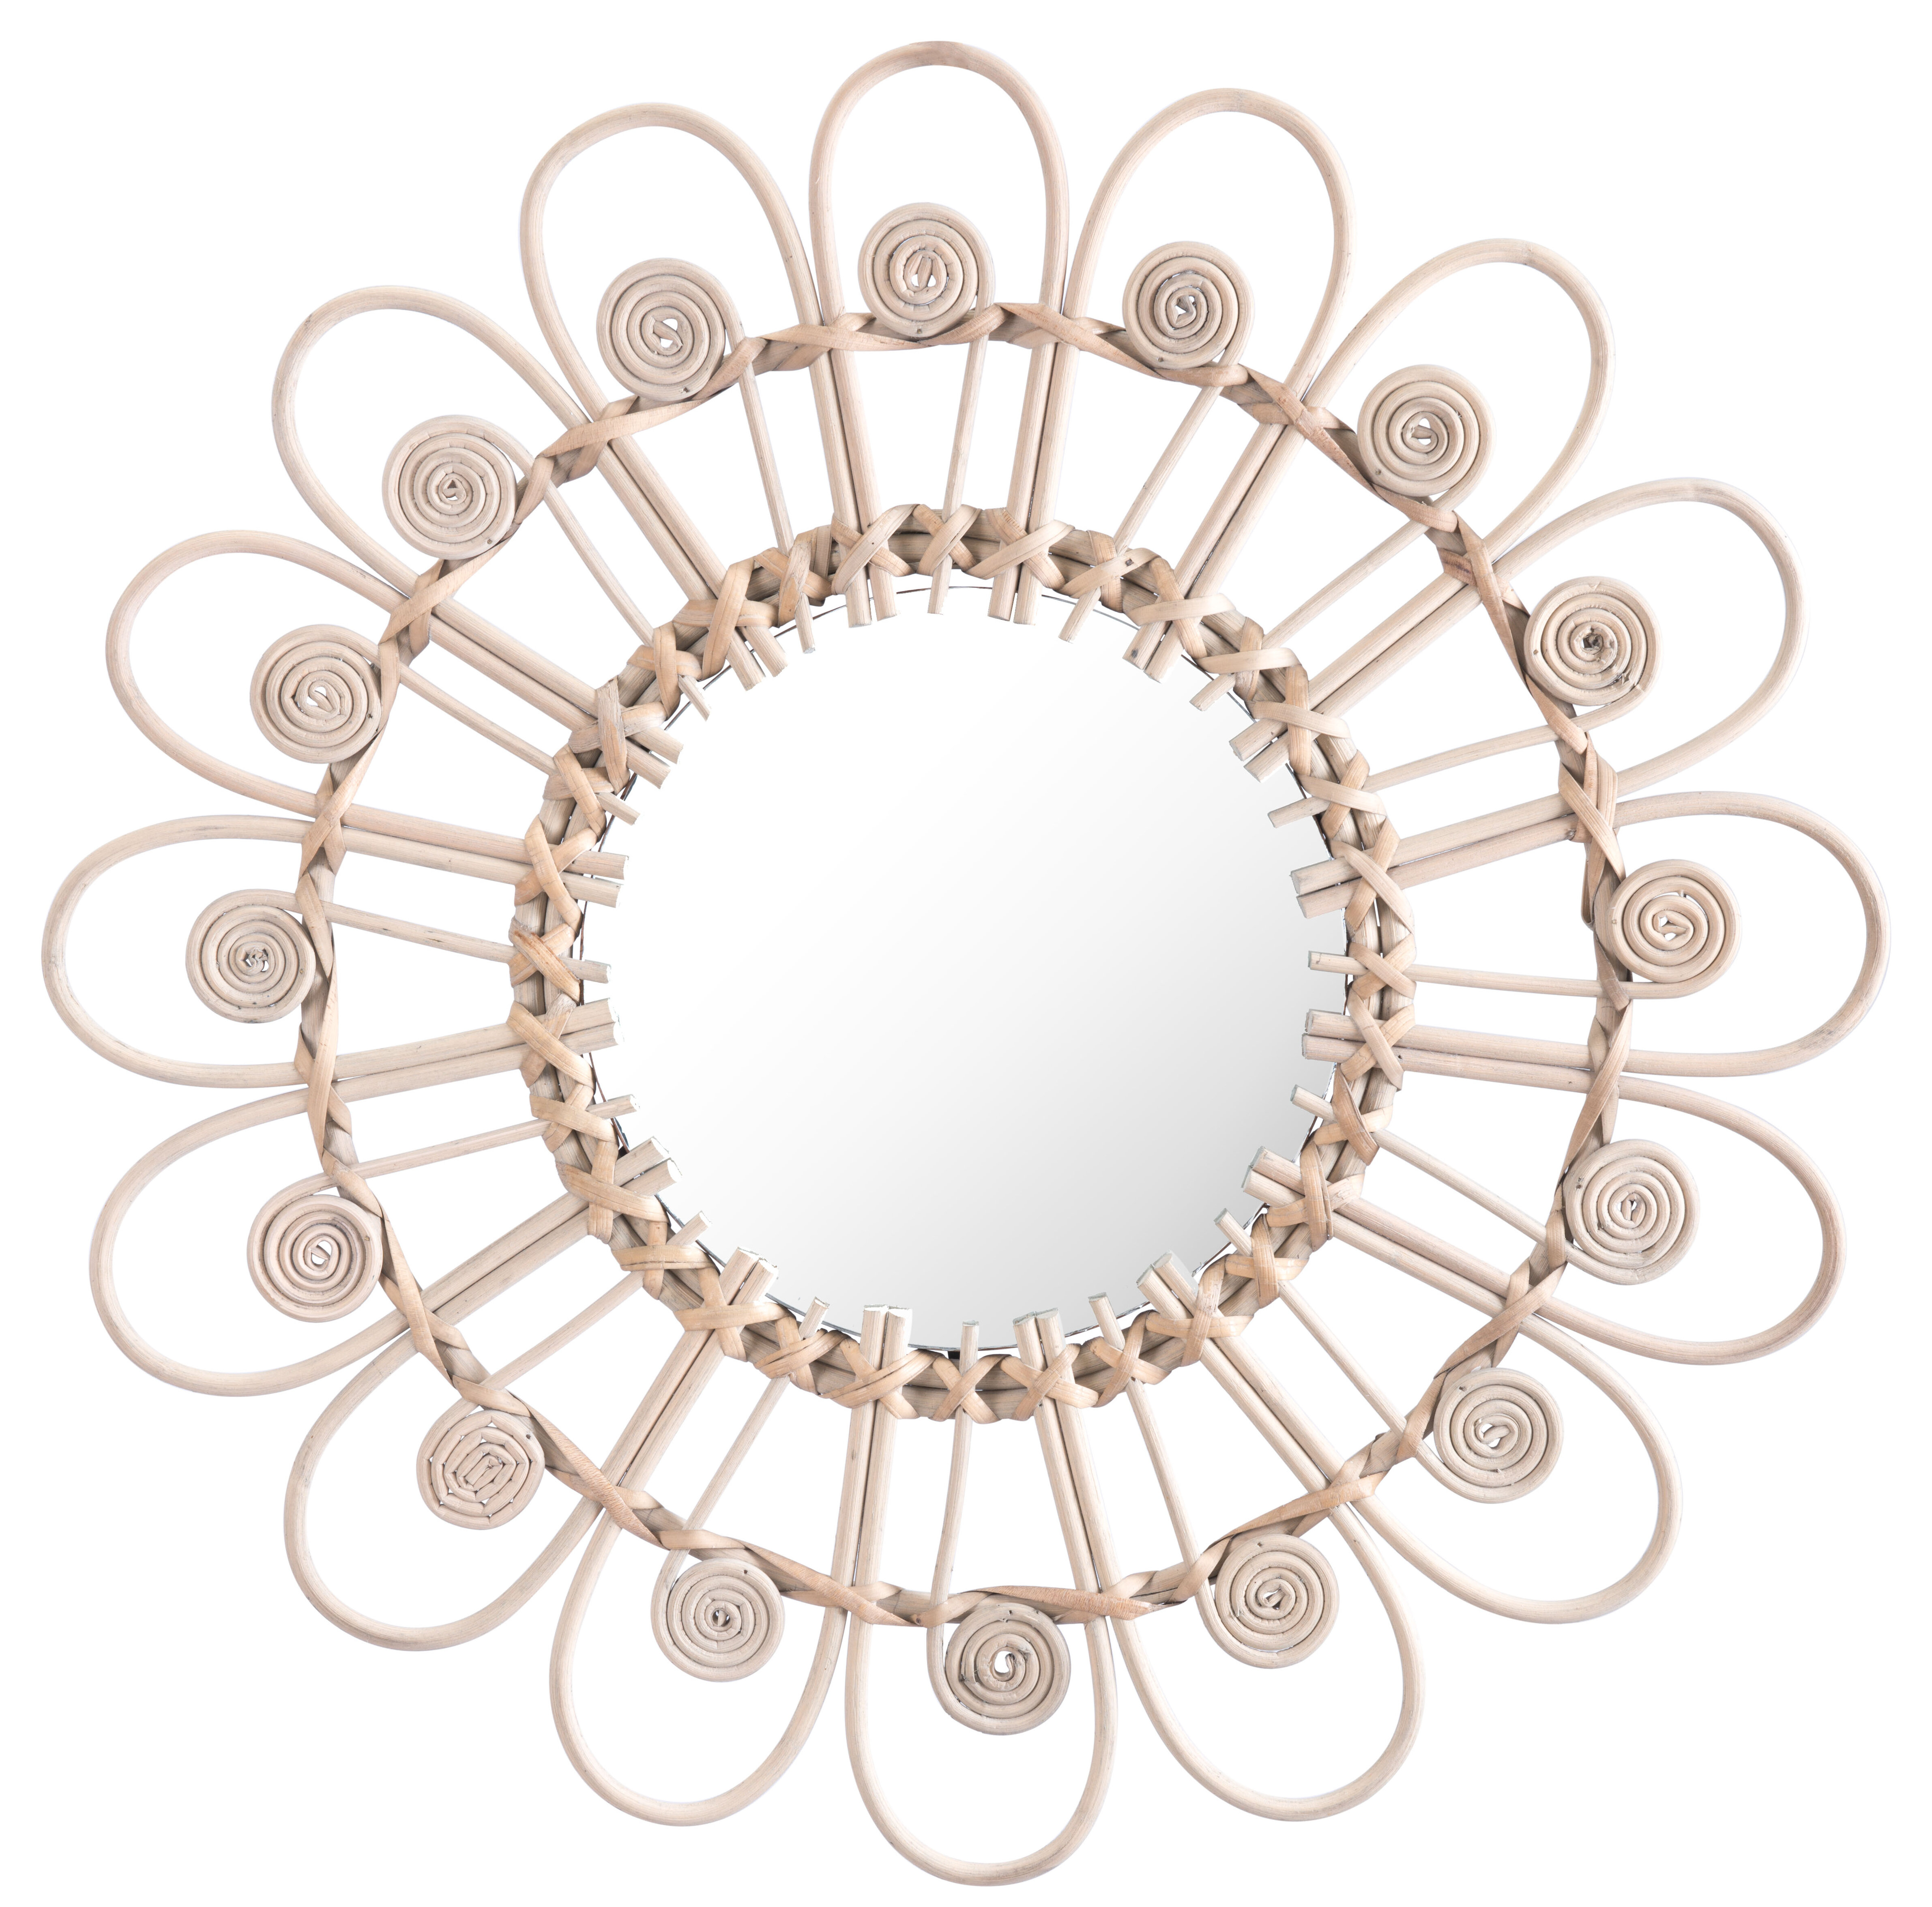 Jalynn Eclectic Accent Mirror With Regard To Round Eclectic Accent Mirrors (View 8 of 30)